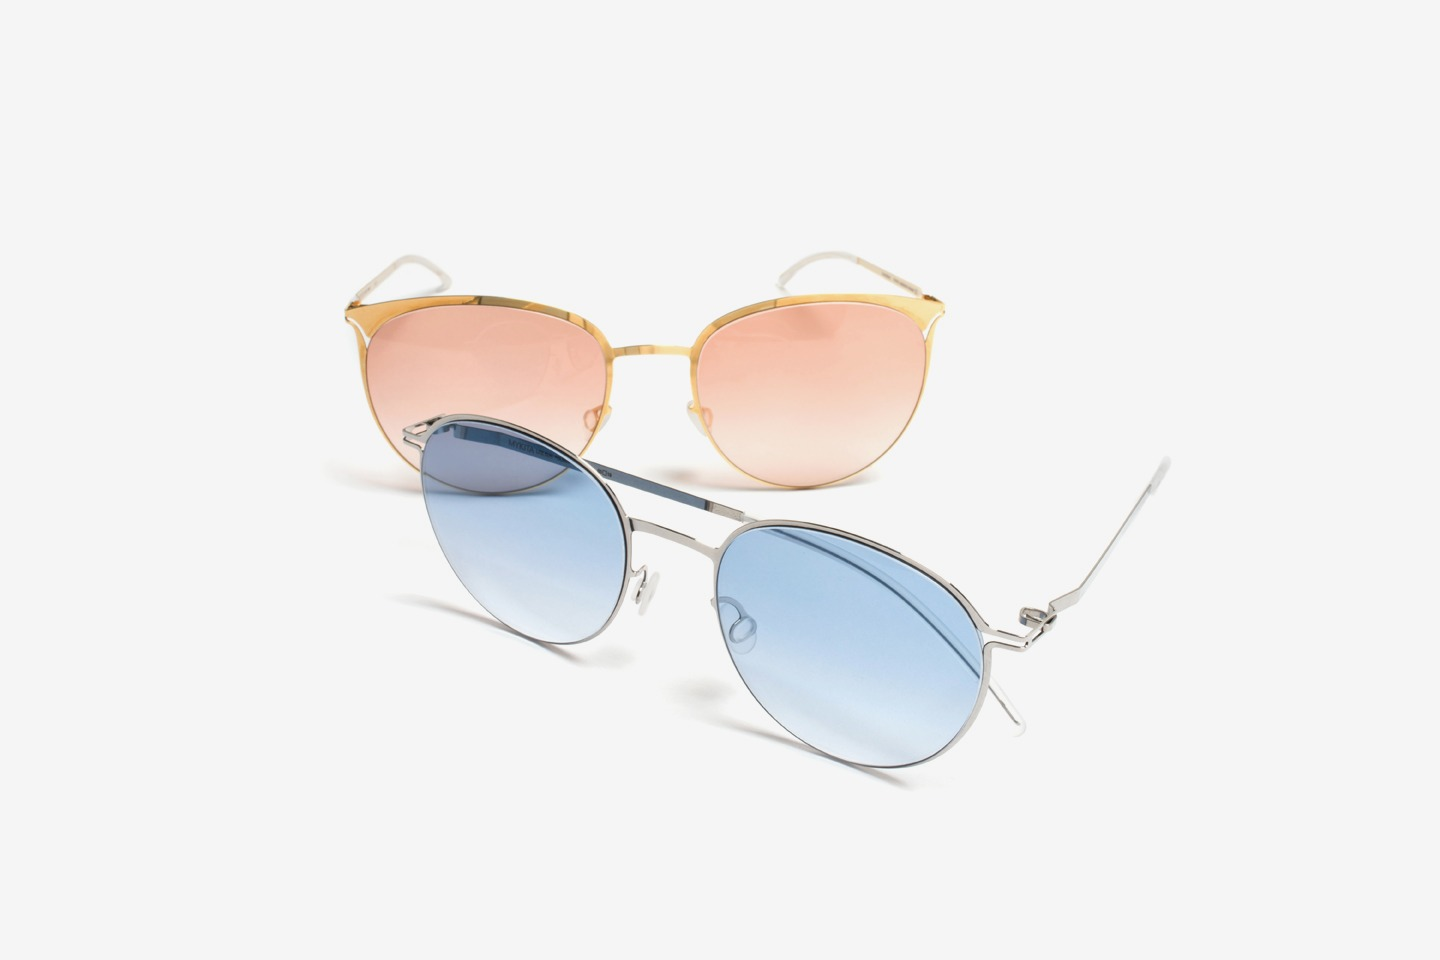 A first look at OLSEN and LINNEA, two models from LITE SUN, MYKITA's ultra-light, stainless steel sunglasses range.